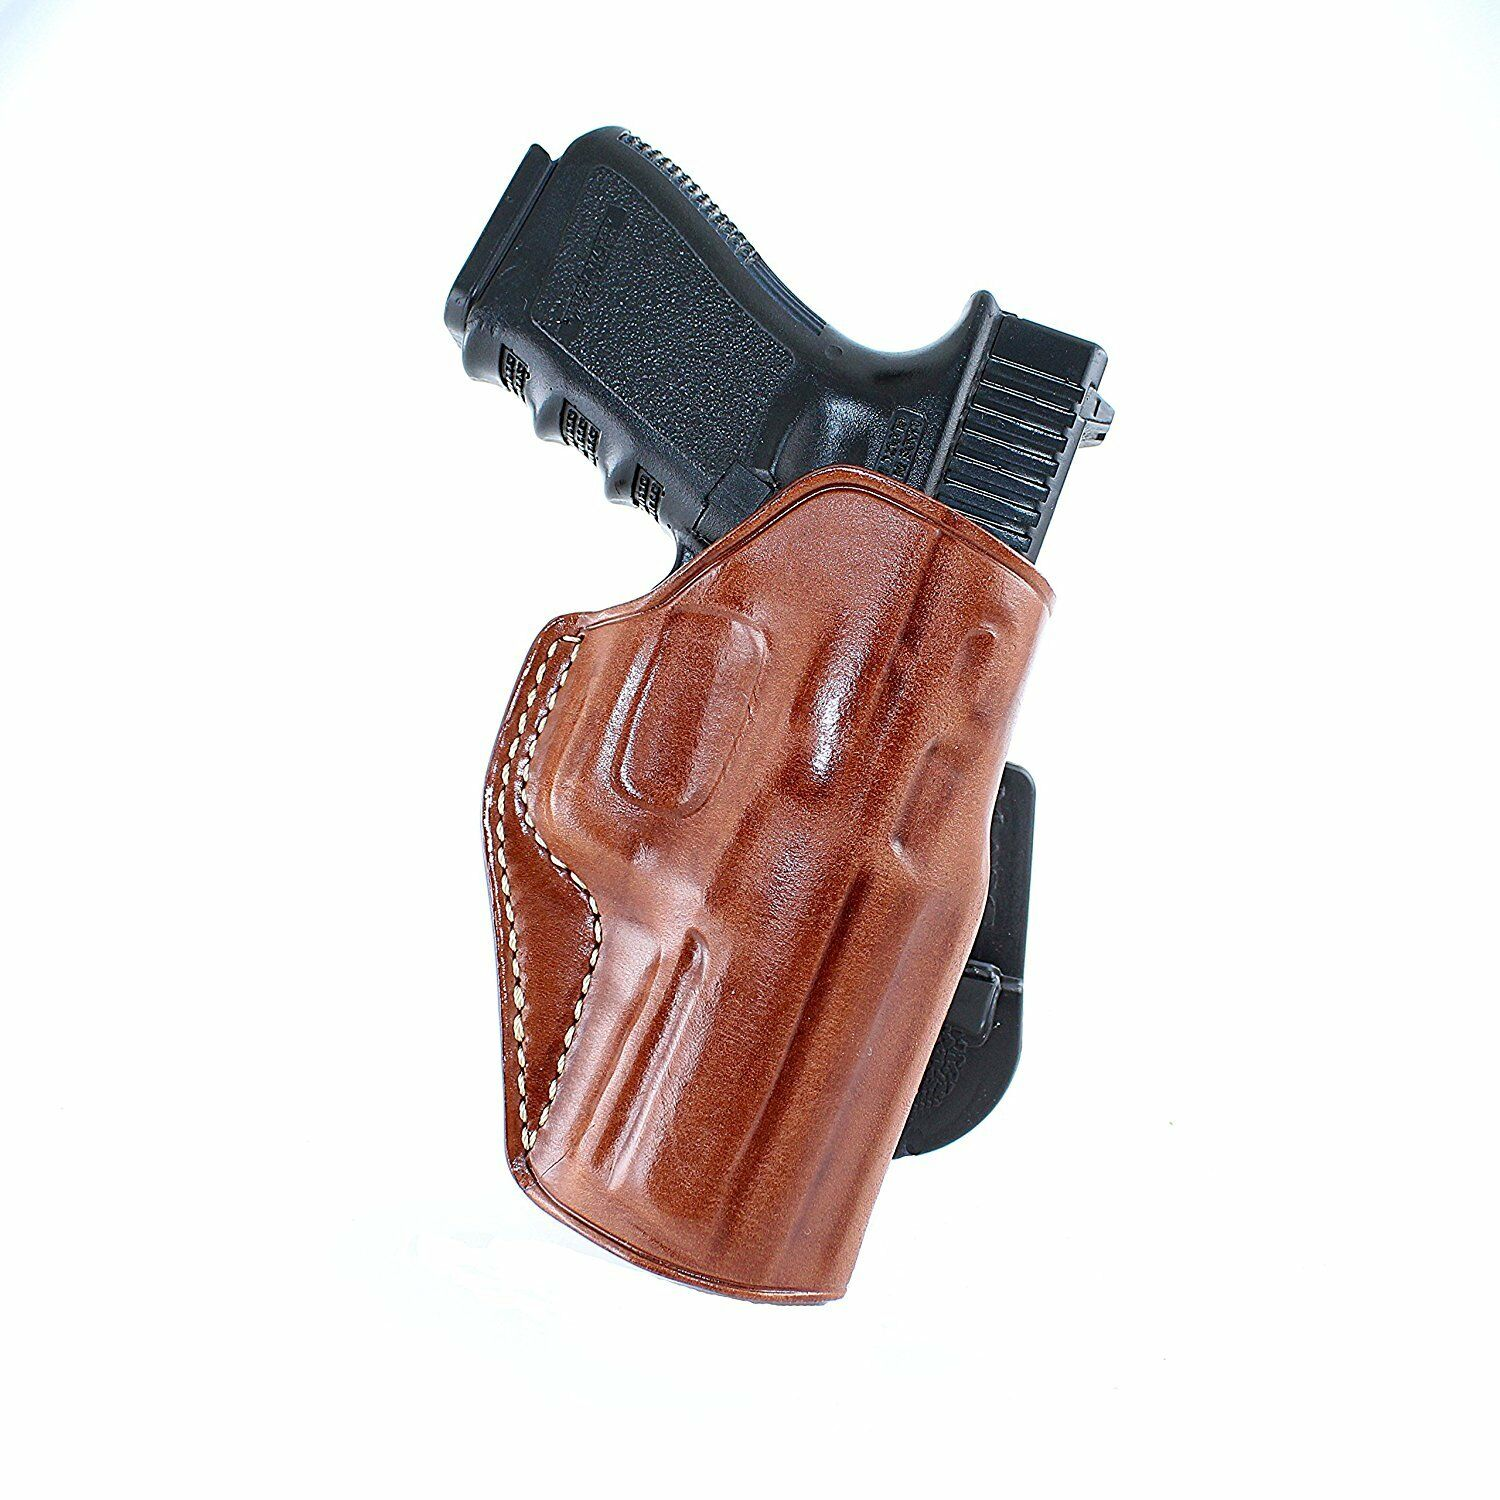 LEATHER PADDLE OWB HOLSTER FOR CANIK 55, CANIK TP9 SA, TP 40, C100 9mm